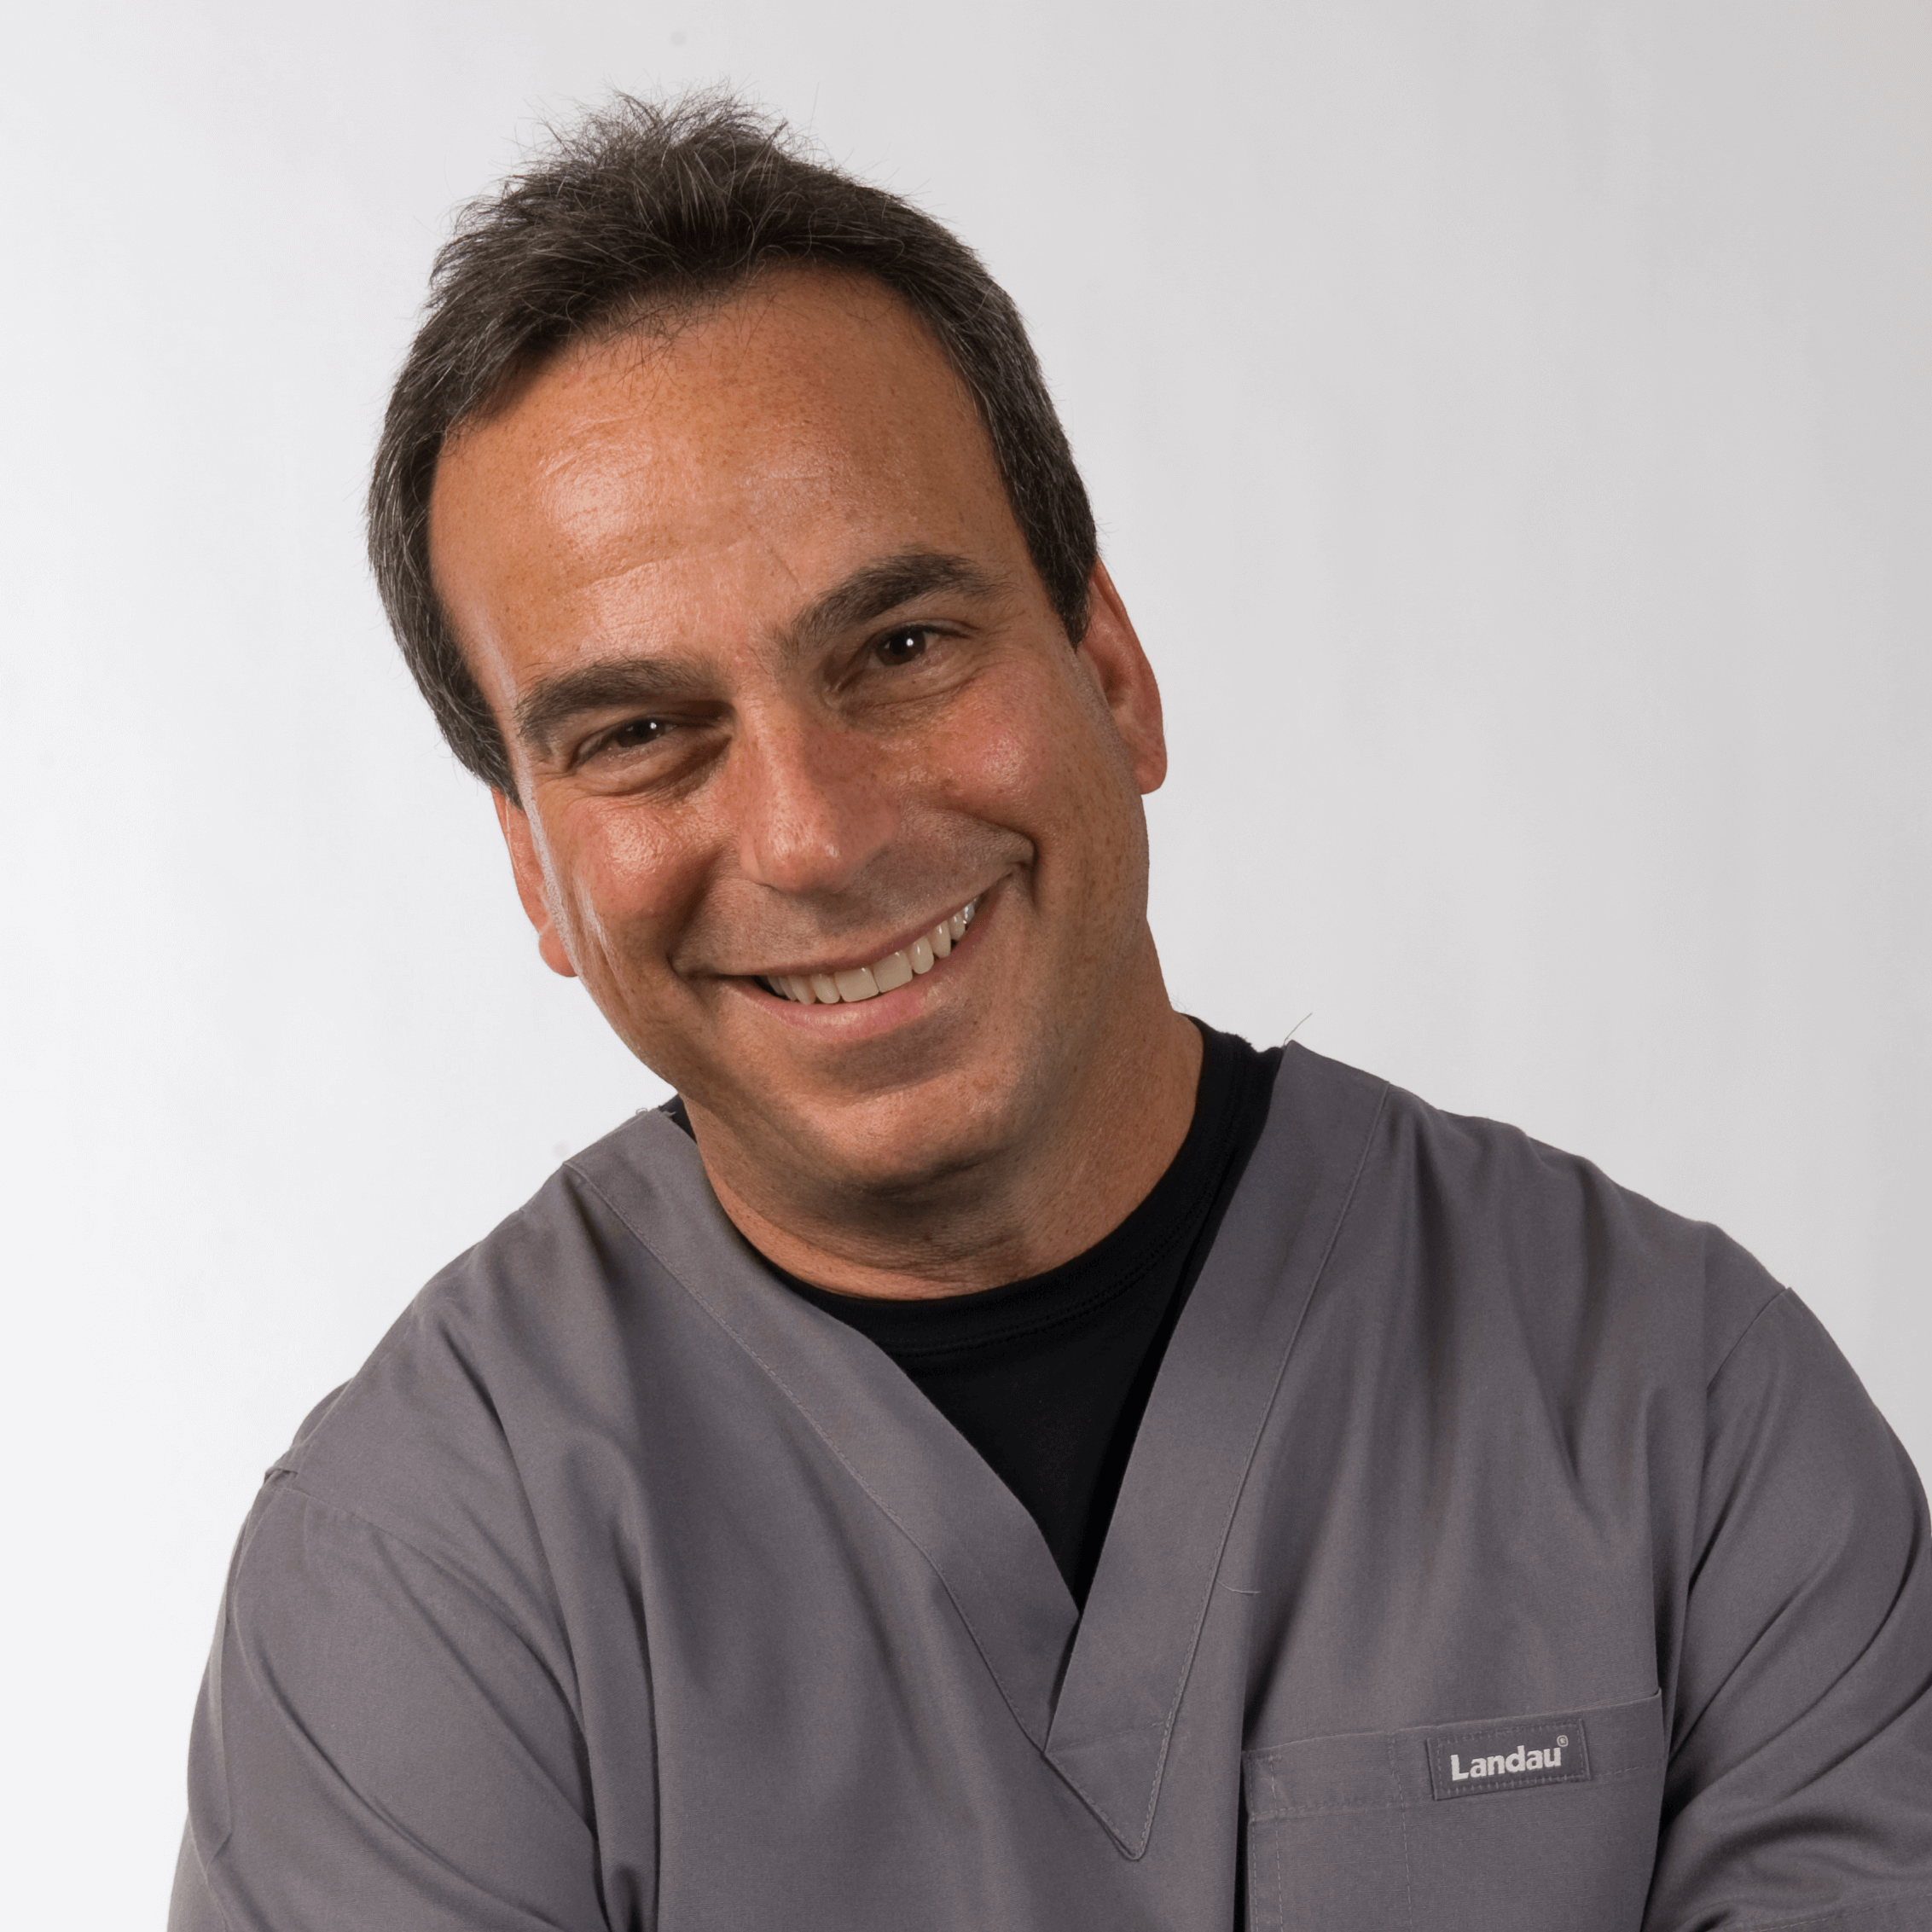 Dr. Martin Marcus, DDS